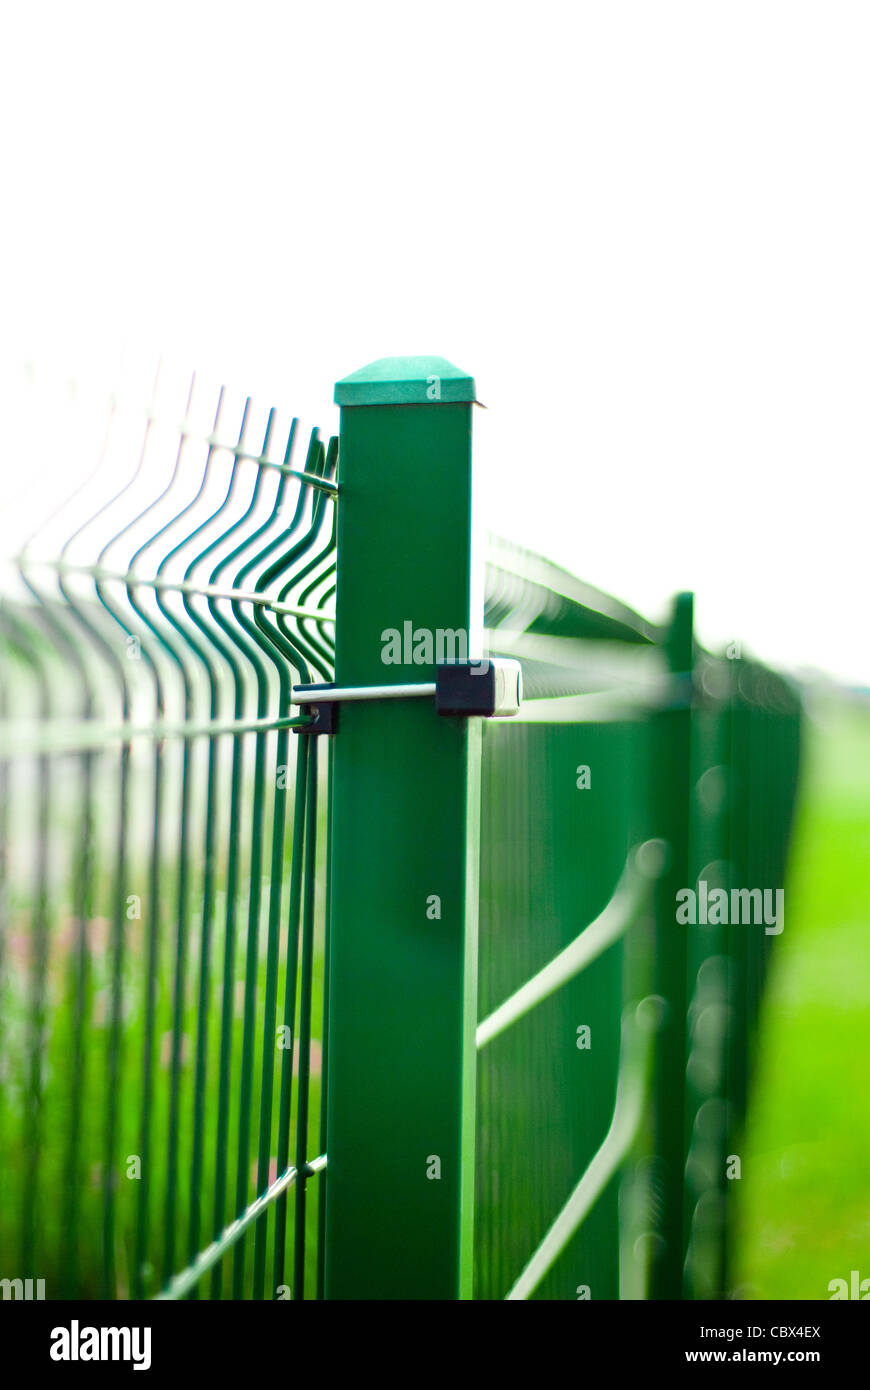 Protections, defense, guarding and all things related to it - Stock Image